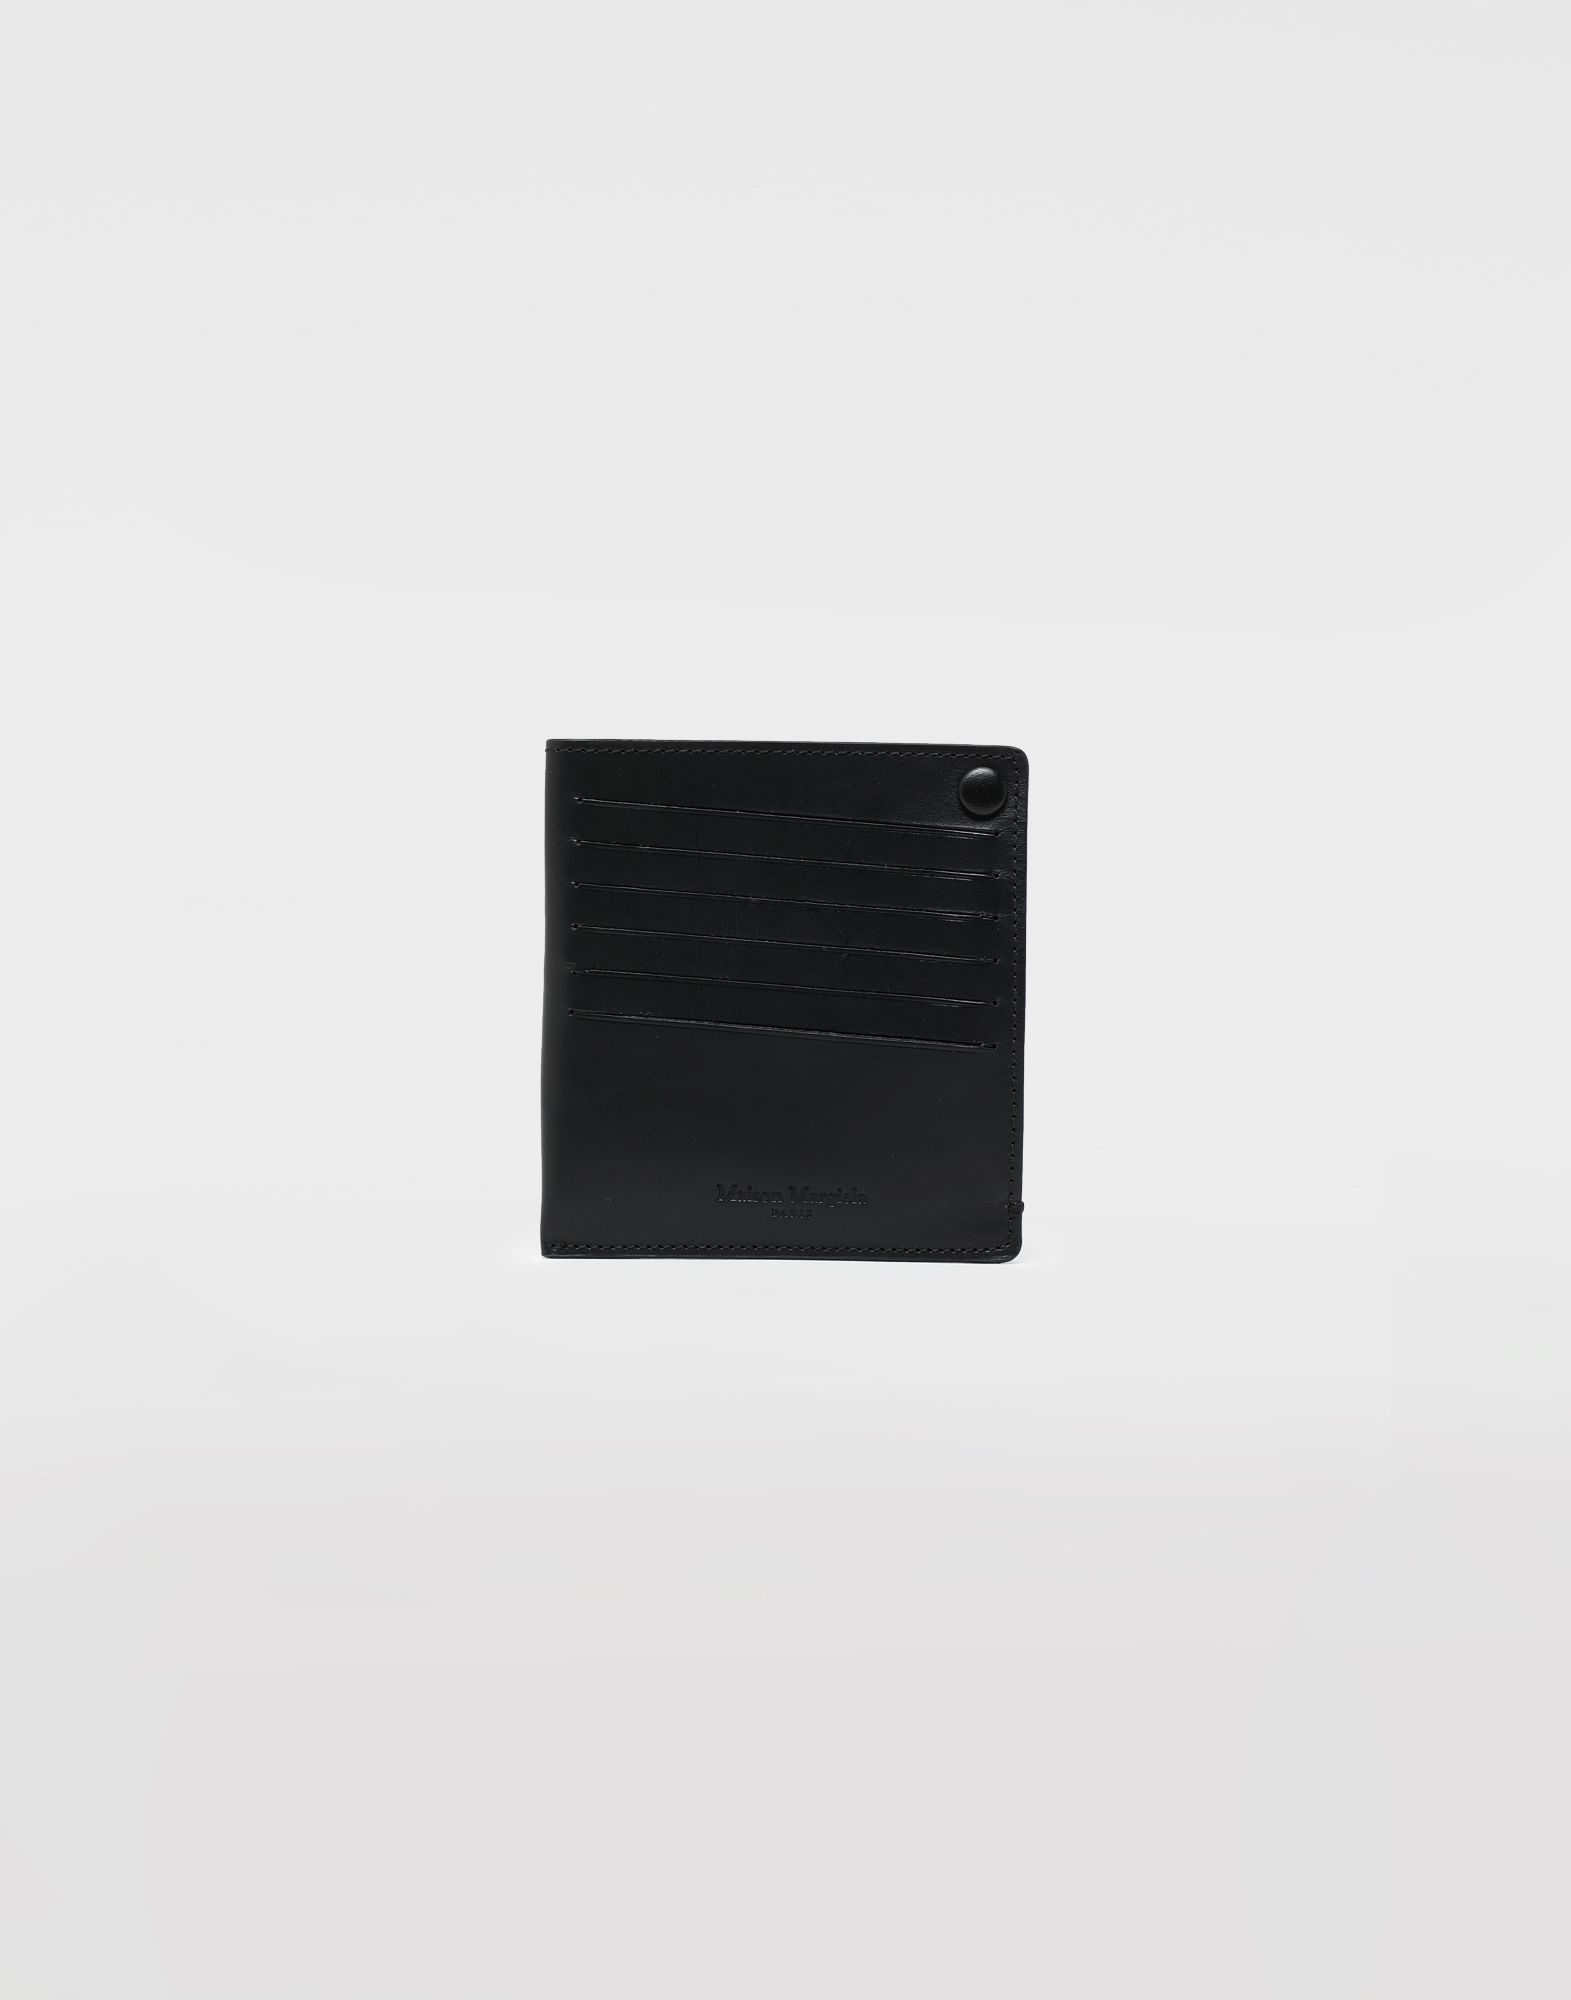 MAISON MARGIELA Leather popper wallet Wallets Man f